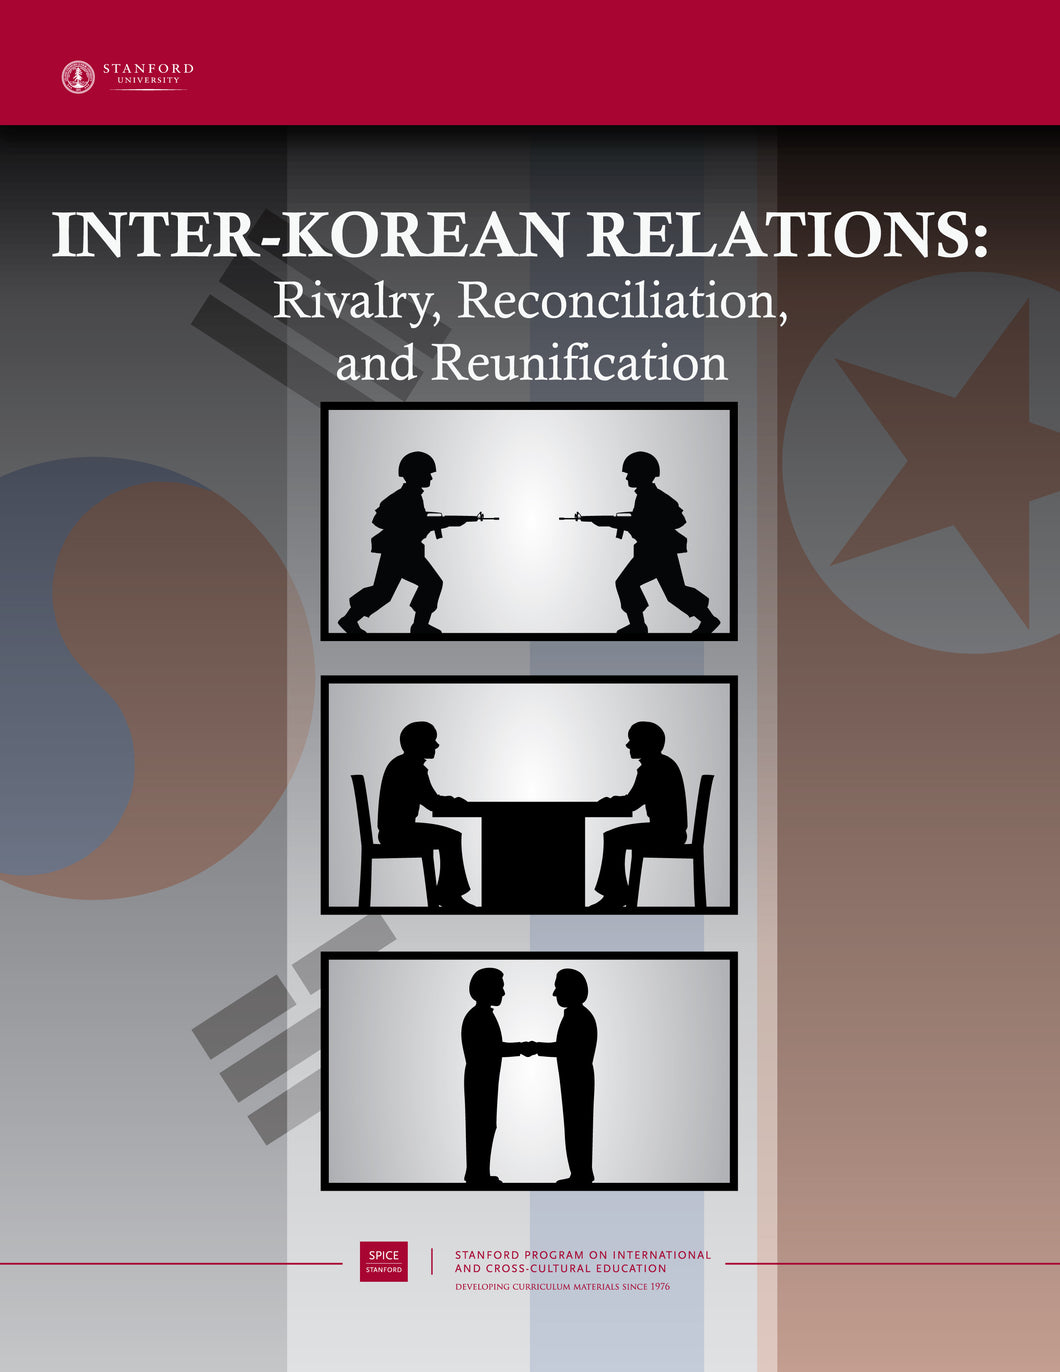 Inter-Korean Relations: Rivalry, Reconciliation, and Reunification